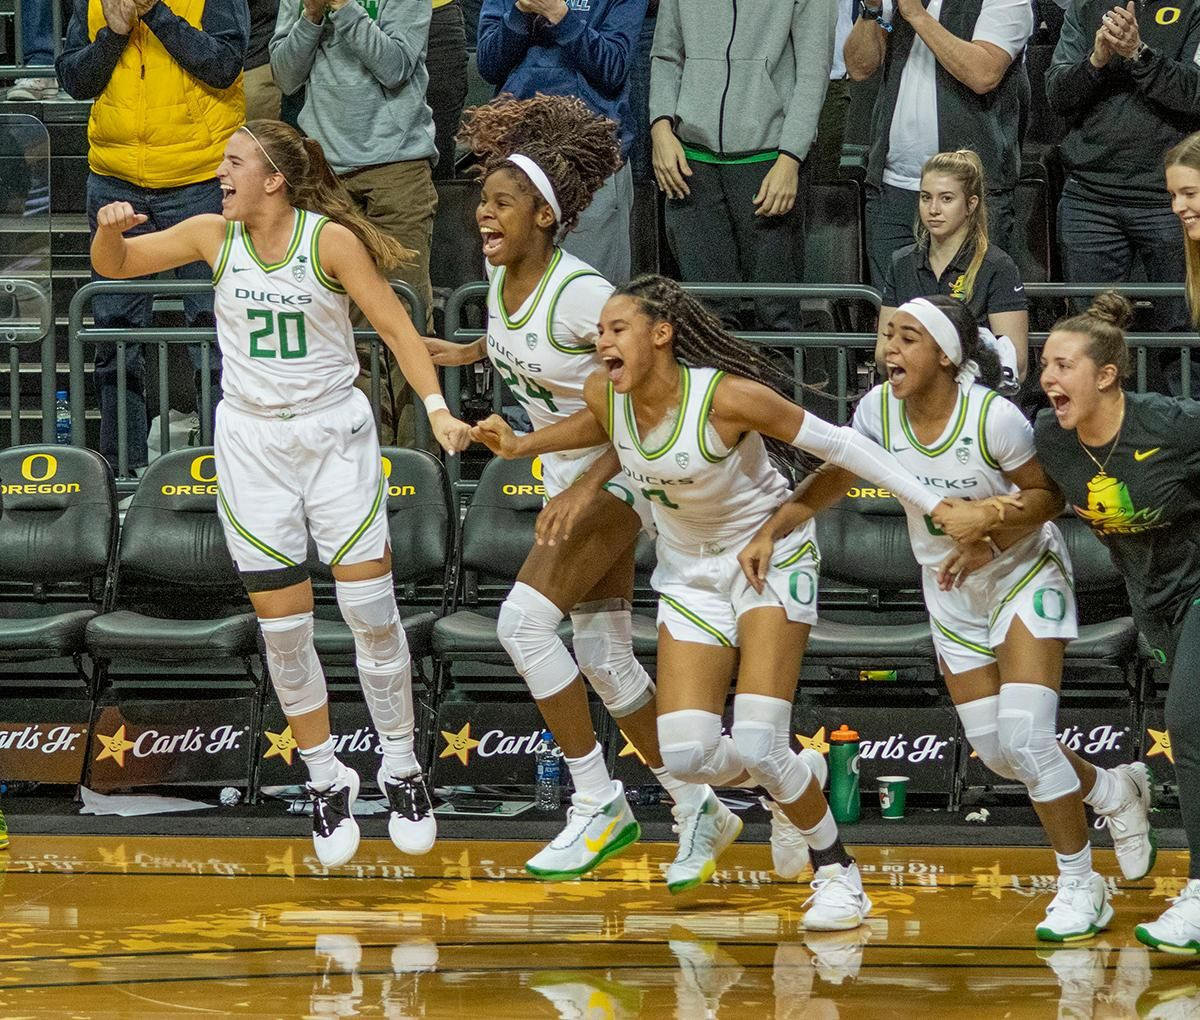 University of Oregon Ducks starters come off the bench to celebrate their teams victory over Stanford. From left to right: Sabrina Ionescu, #20; Ruthy Hebard, #24; Satou Sabally, #0, Minyon Moore, #23. The #6 University of Oregon Ducks women's basketball team defeated #3 Stanford Cardinal 87-55 in front of a sold out crowd of 12, 218 fans in Matthew Knight Arena. Sabrina Ionescu broke the all-time Oregon scoring record of 2,253 and ended the game with 37 points, 11 rebounds, another double-double. Satou Sabally added 18 points and 11 rebounds, also a double-double. Ruthy Hebard put up 11 points with 5 rebounds, and Minyon Moore added 10 points 3 rebounds. The Ducks next face off against Cal on Sunday, January 19, at 2 pm in Matthew Knight Arena. Photo by Dan Morrison